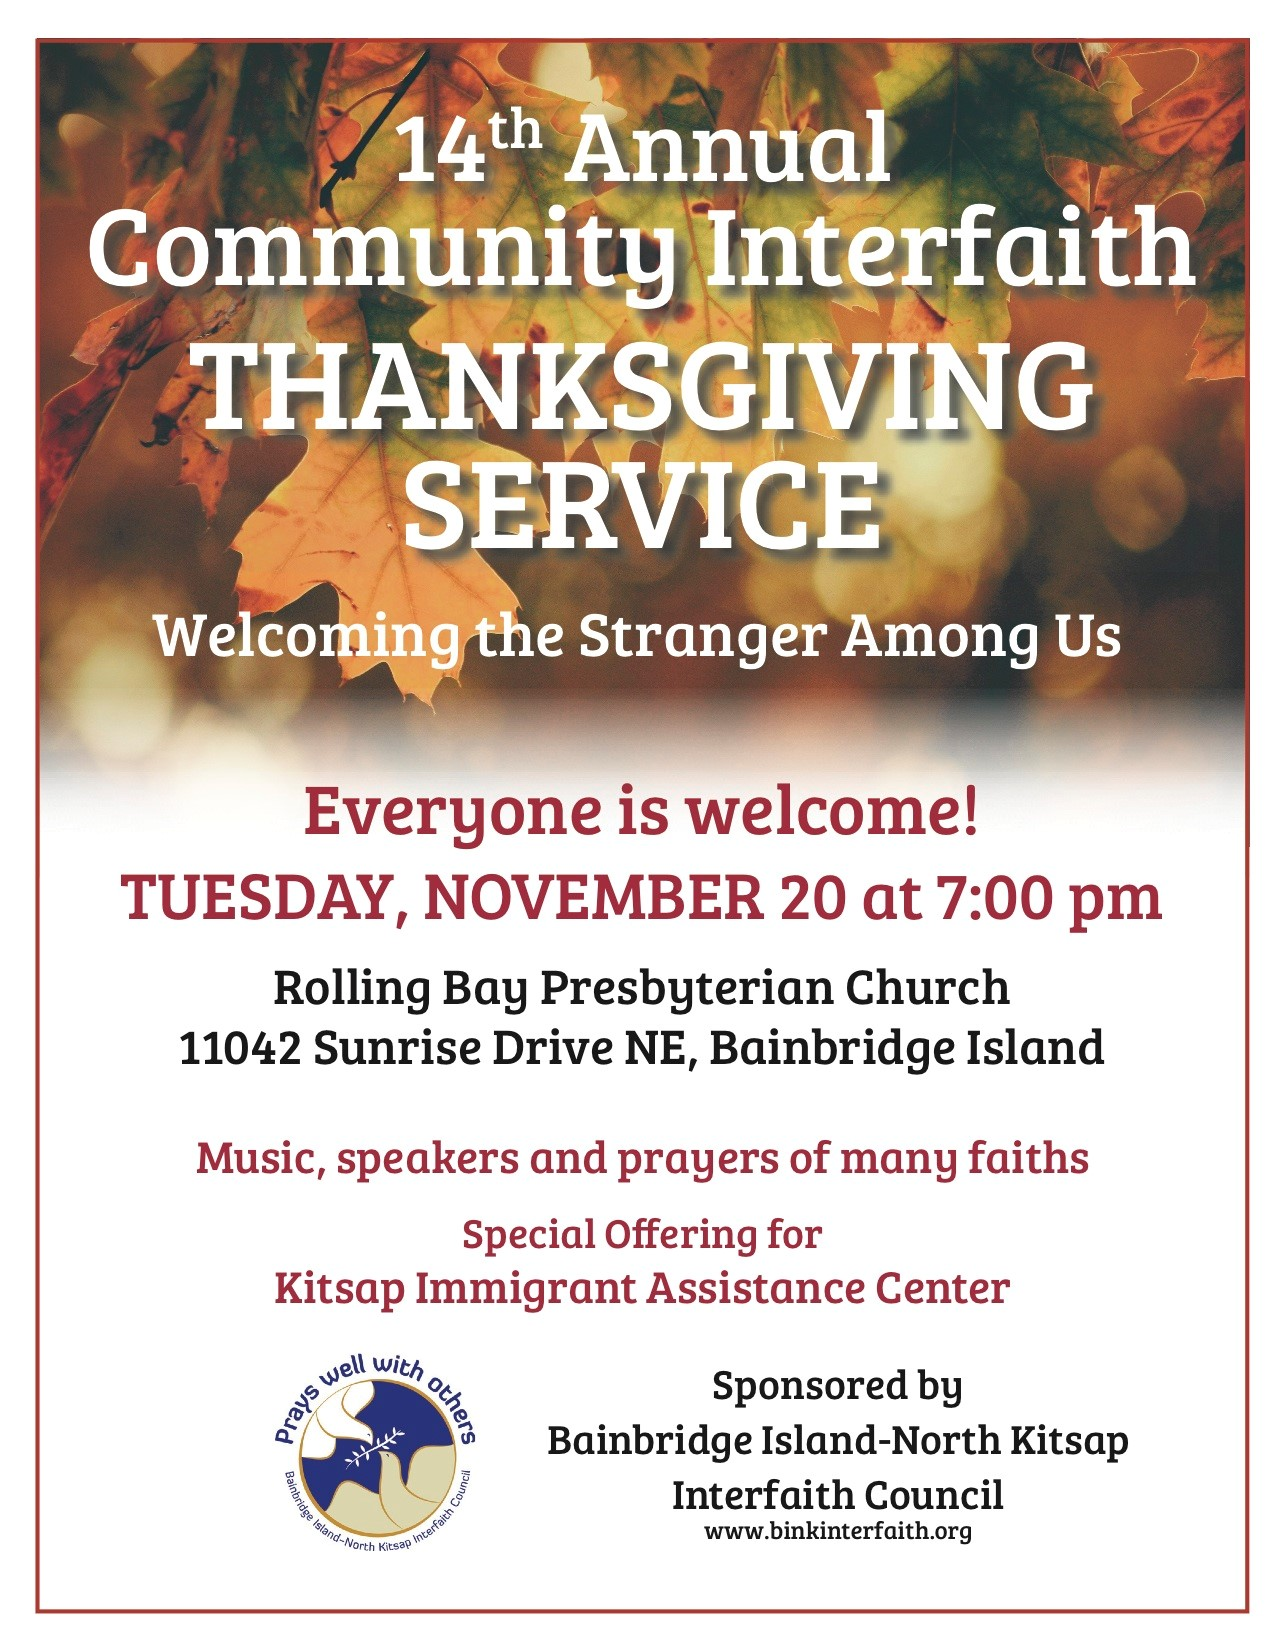 Thanksgiving Interfaith Service @ Rolling Bay Presbyterian Church | Bainbridge Island | Washington | United States